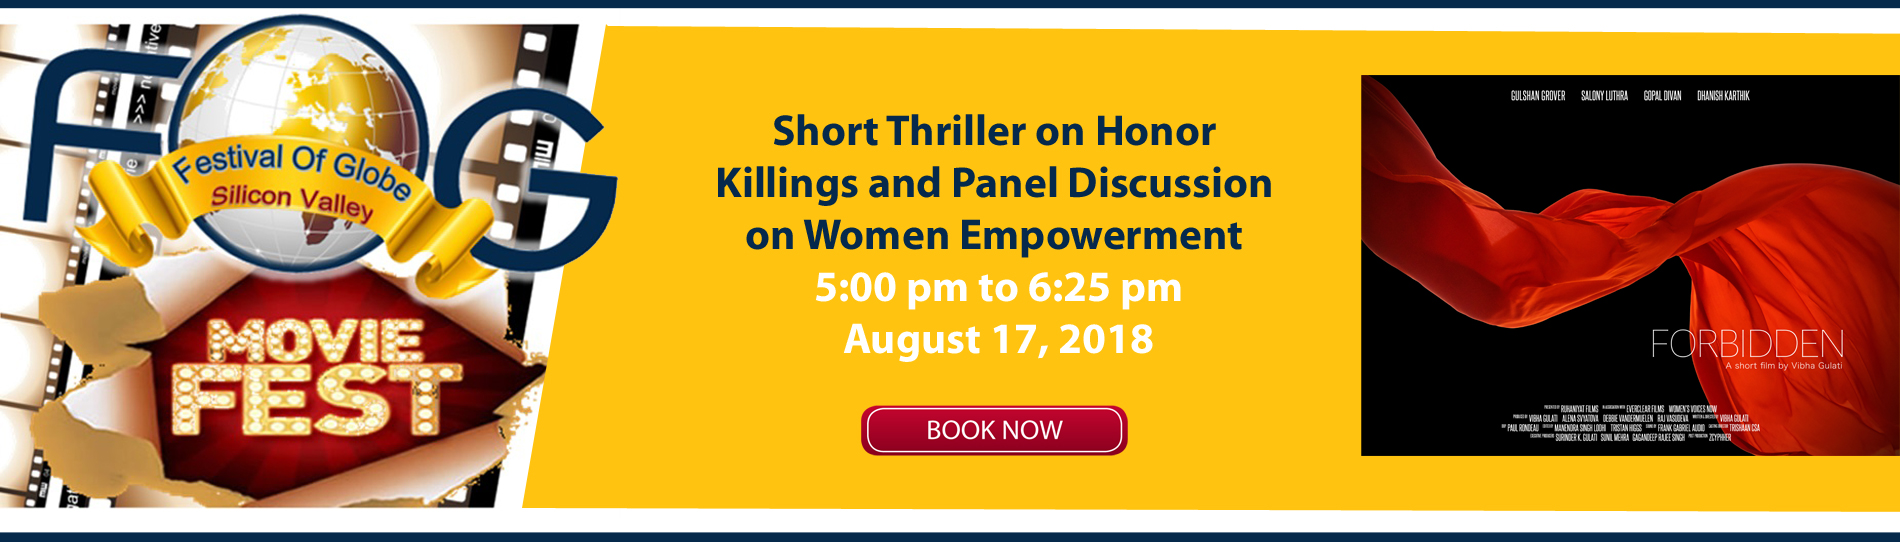 EventMozo Short Thriller on Honor Killings and Panel Discussion on W....